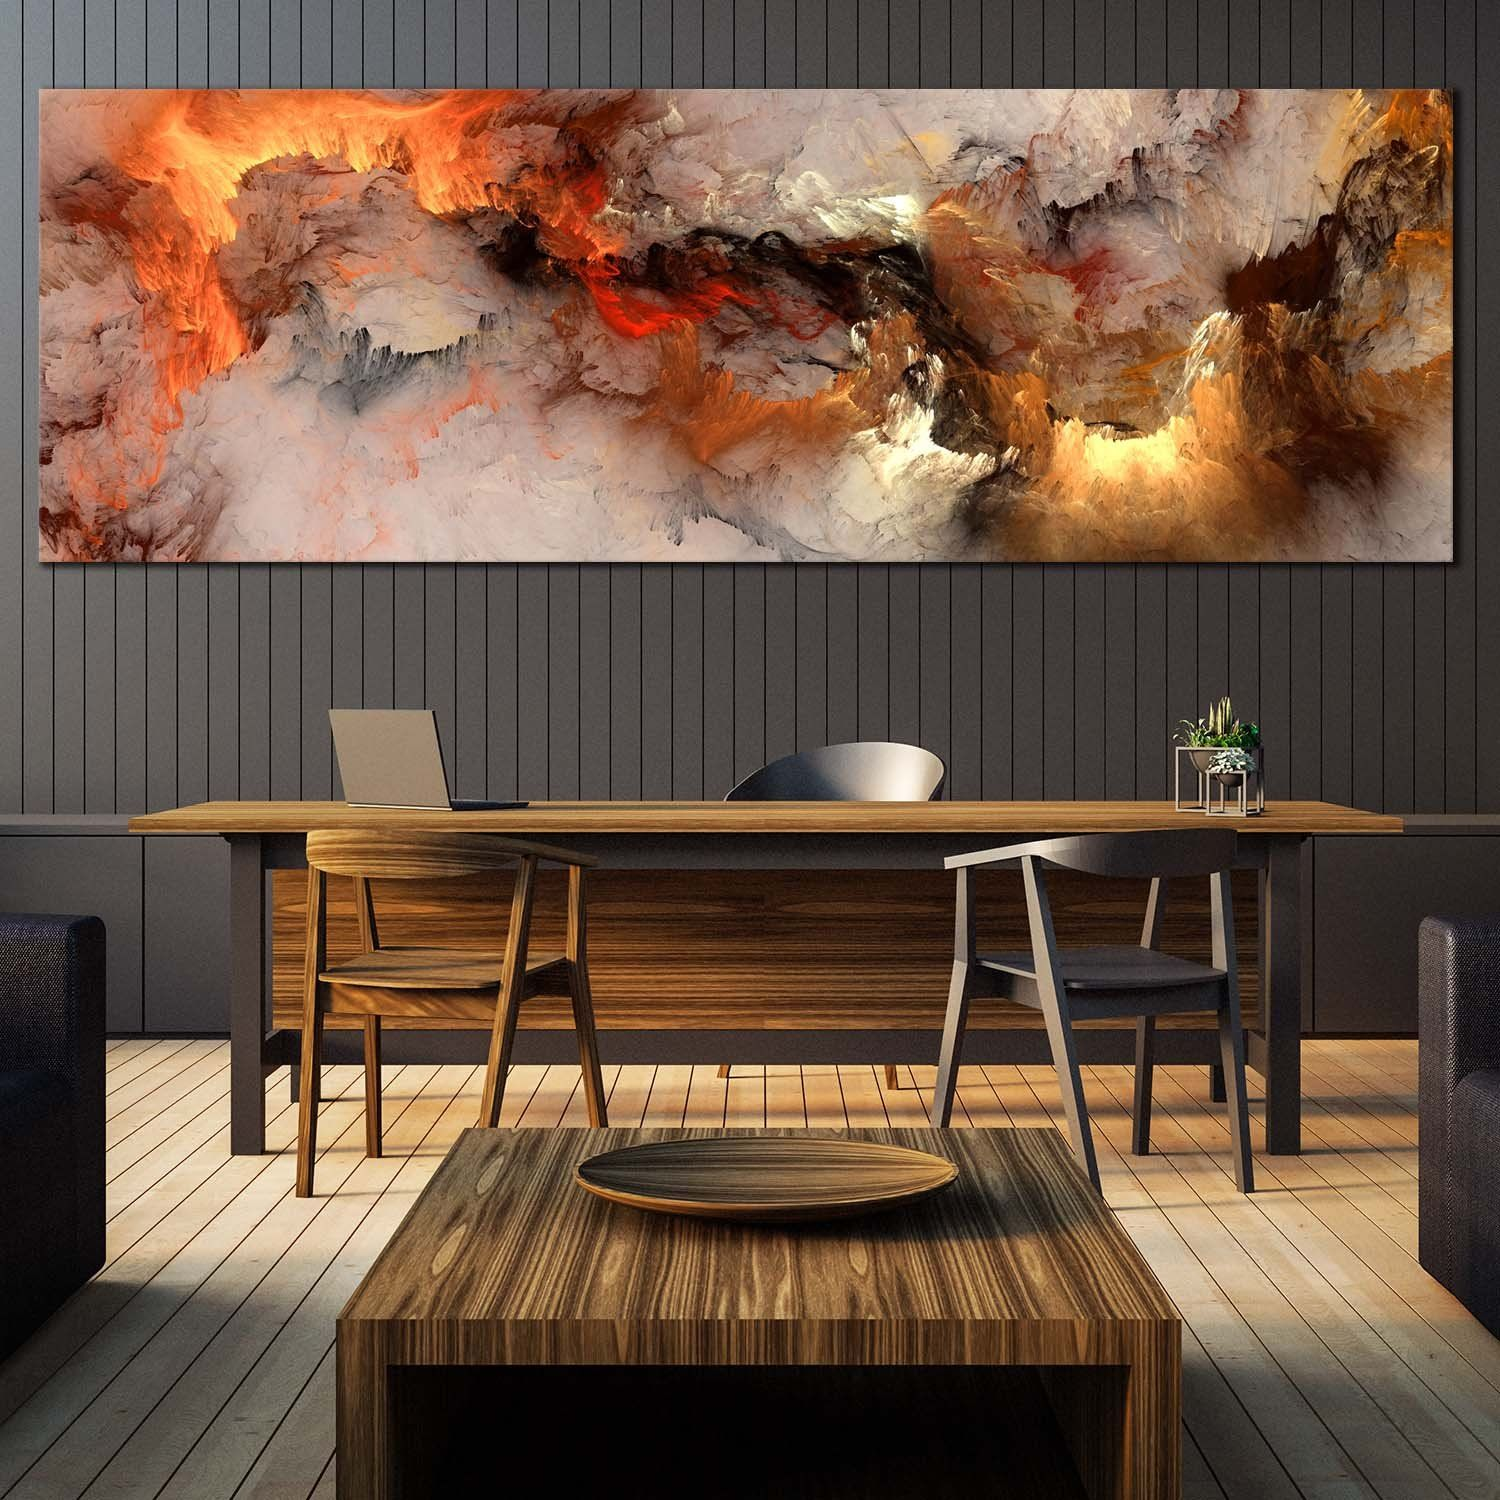 Fractal Abstract Canvas Wall Art Orange White Smoke Texture Abstract Dwallart Diy Canvas Wall Art Abstract Canvas Wall Art Wall Canvas